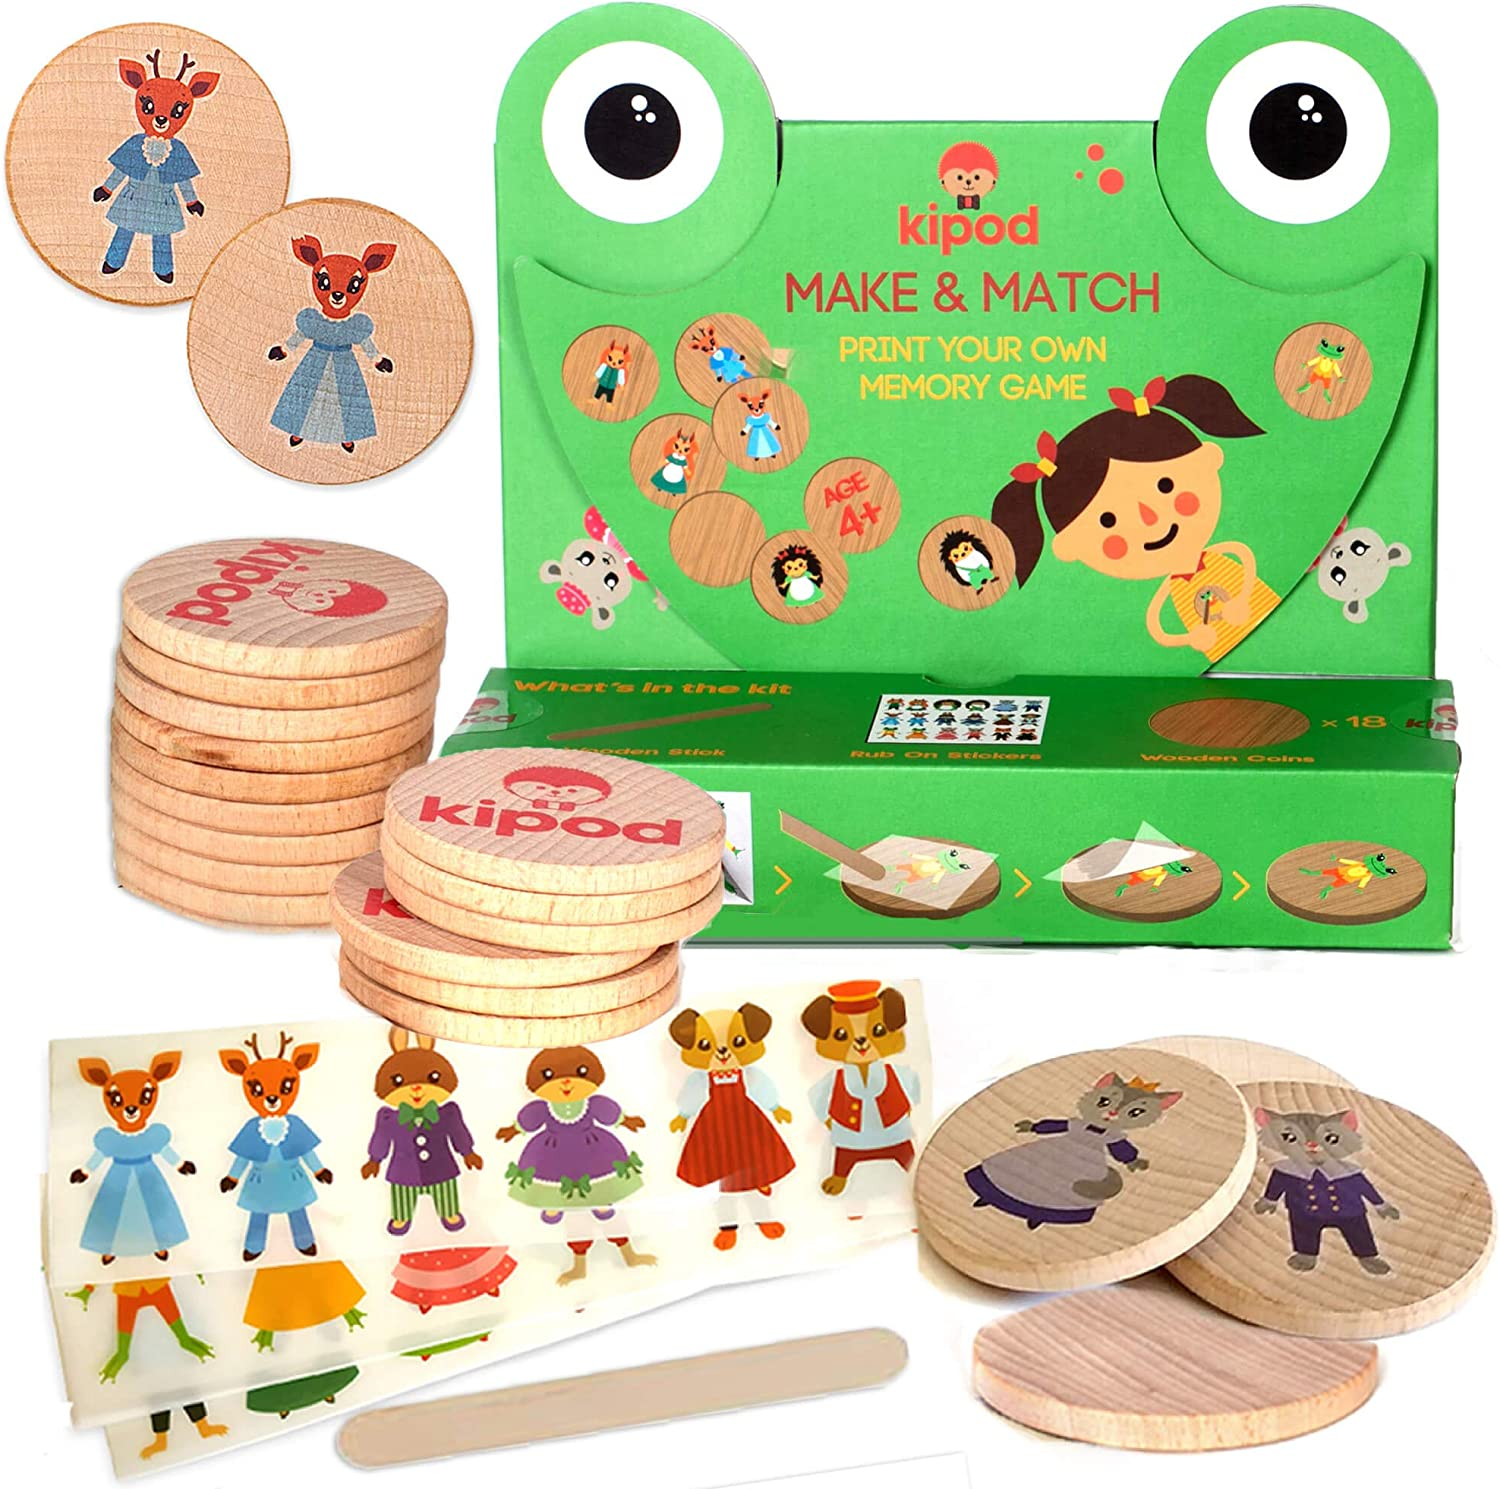 Crafts kit for Girls and Boys Kipod Toys Kids Matching Game Print Your Memory Game for Kids Ages 4-8-year-old 36 Wooden Coins /& Tattoo Stickers